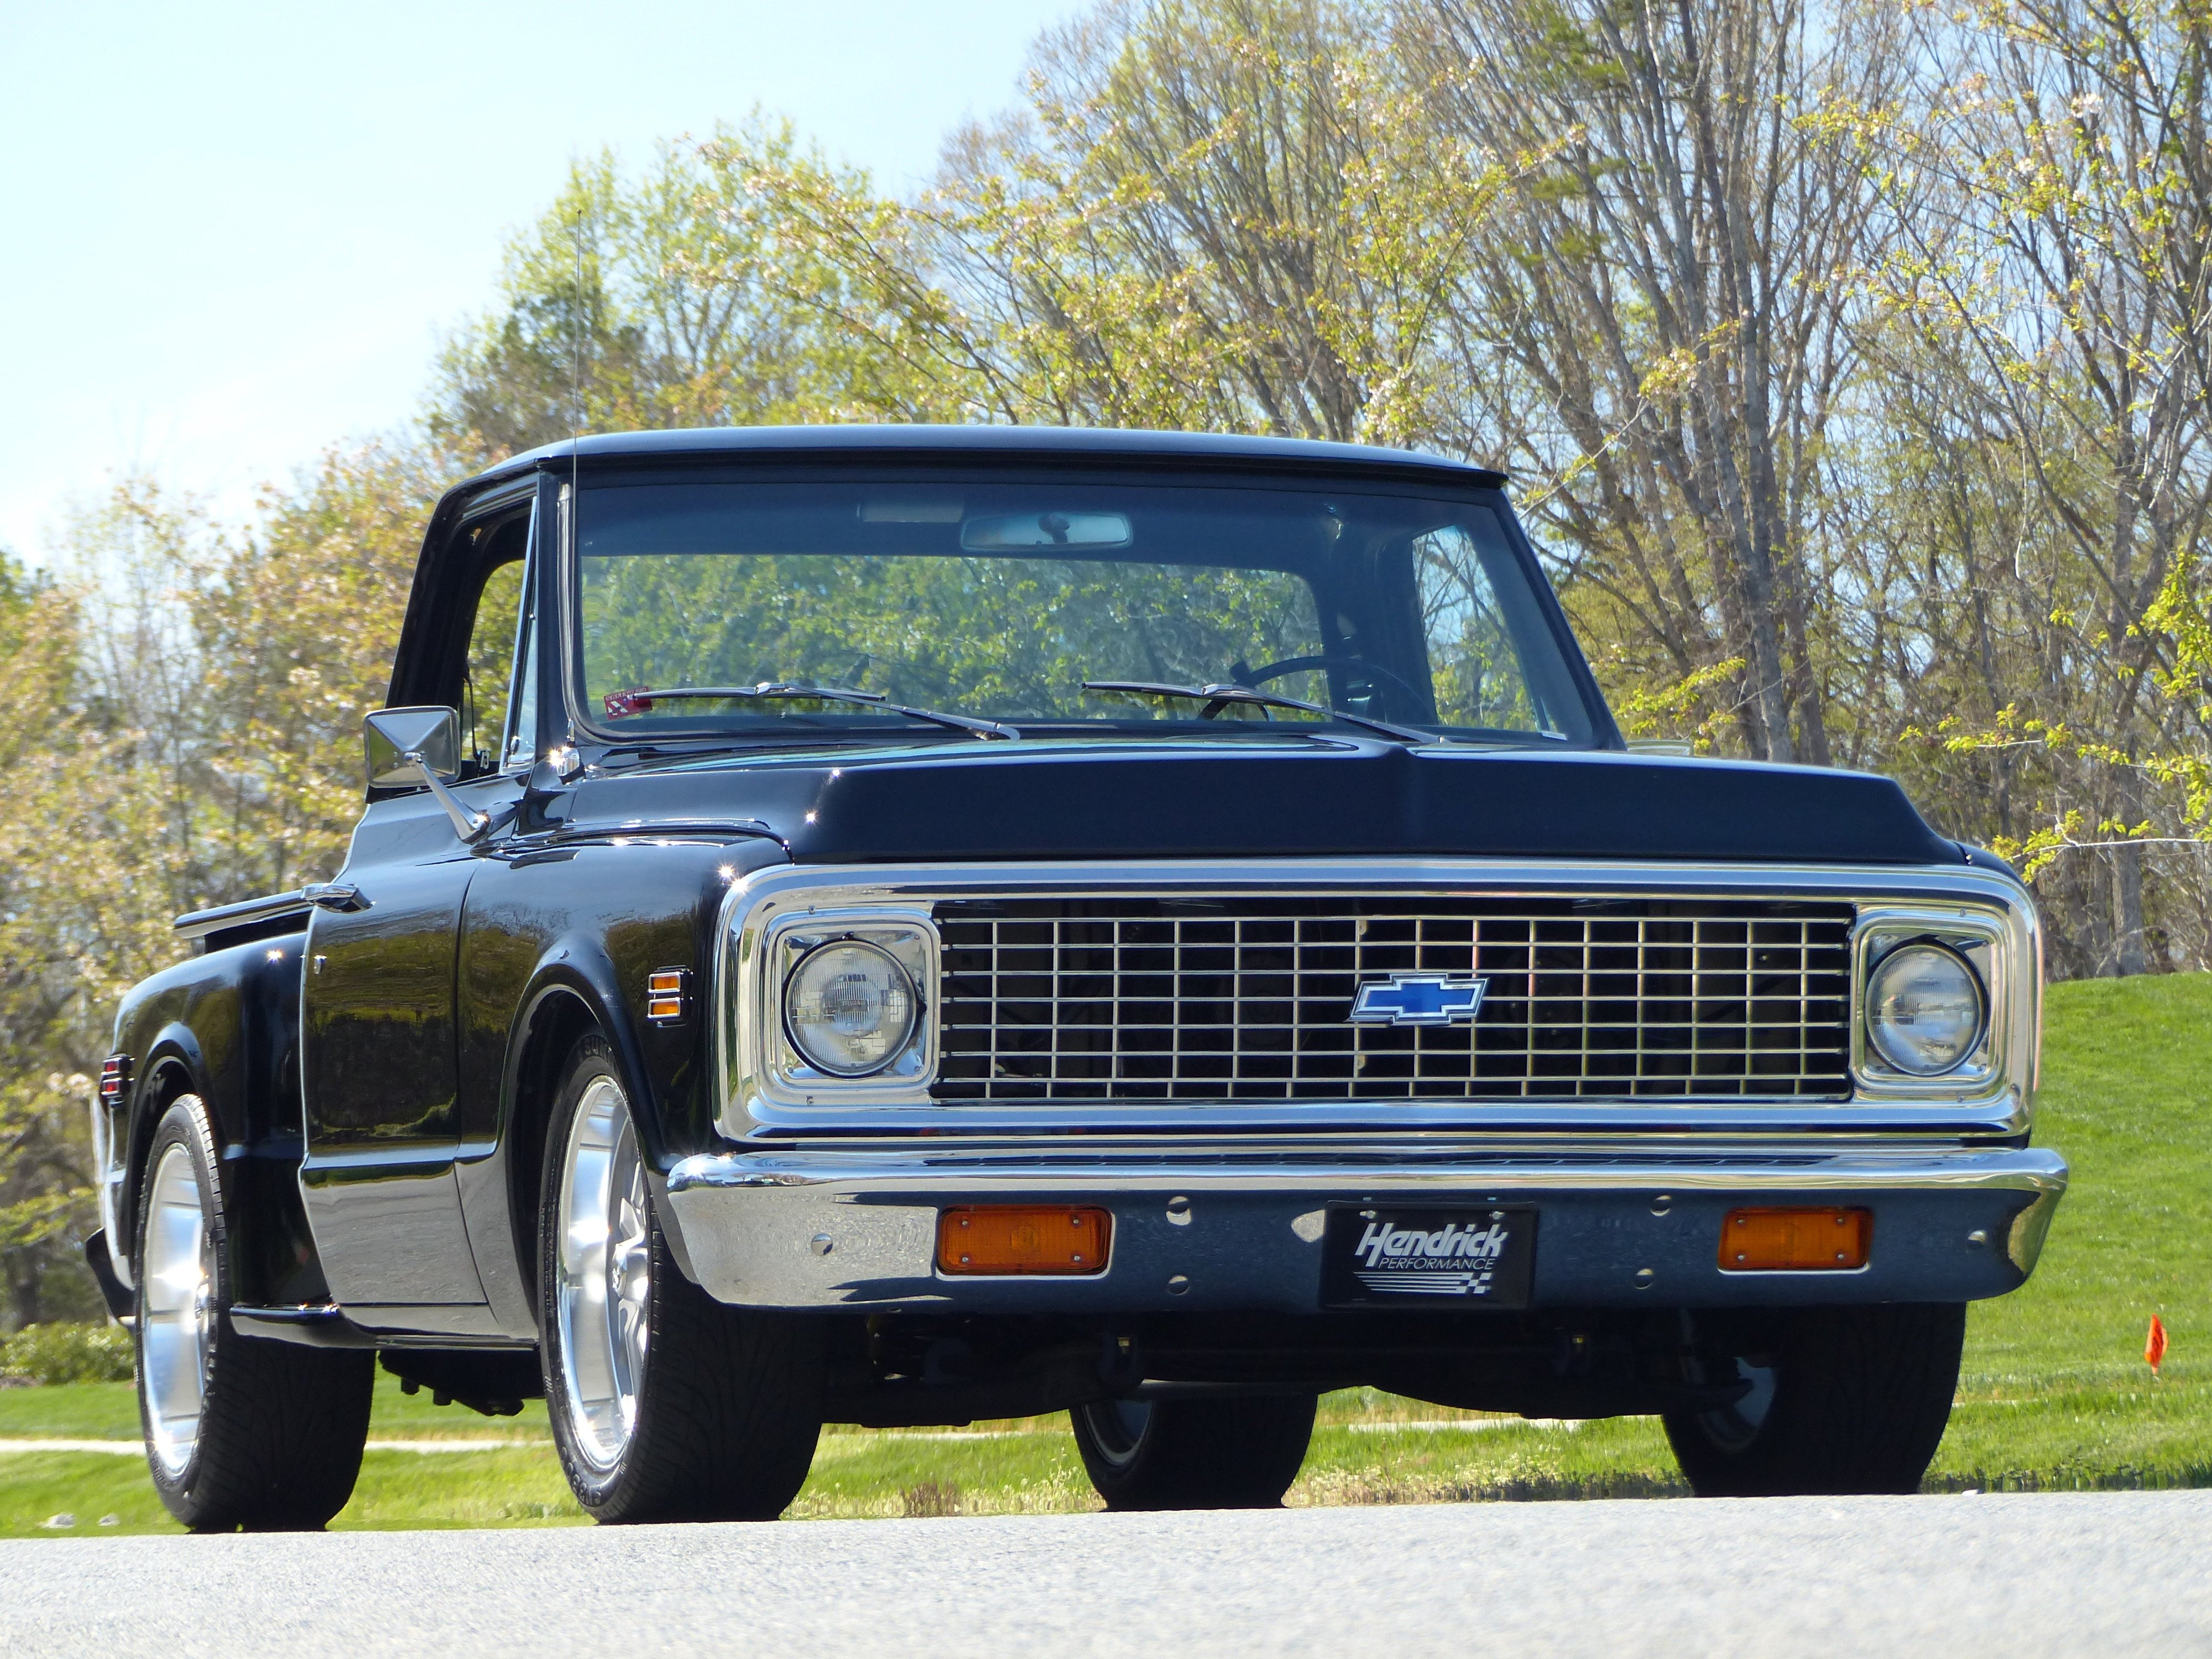 1972 Chevy K20 4x4 Truck For Sale No Reserve 1972 Chevrolet K20 4X4